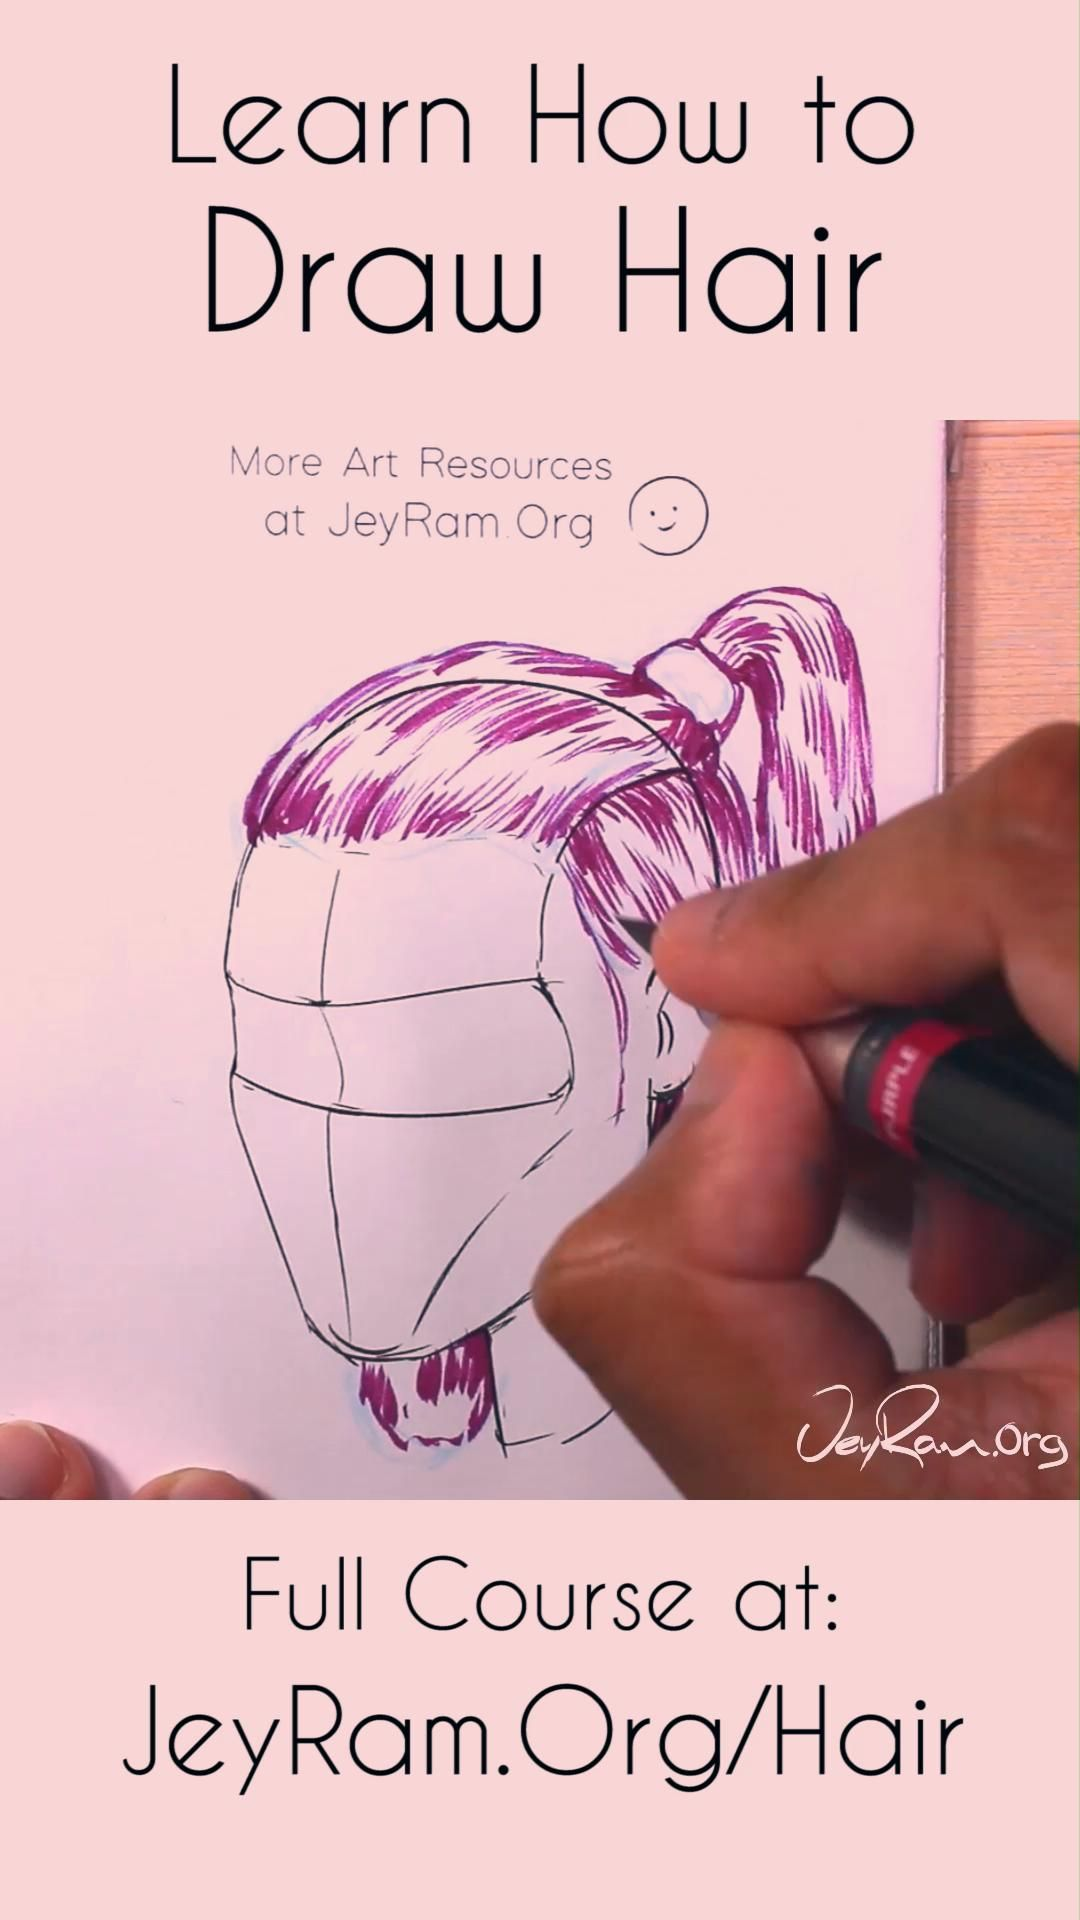 Learn how to draw female hair with this course that is designed to help you learn all the necessary skills for drawing hairstyles at many angles. We will go through a series of exercises that are built in a step by step process to help us draw from the ground up! I strongly believe in using worksheets to learn how to draw because it helps to solidify our learning in a very streamlined manner. Let's draw some cute hairstyles together! #tutorial #drawing #draw #howtodraw #anatomy #art #artist